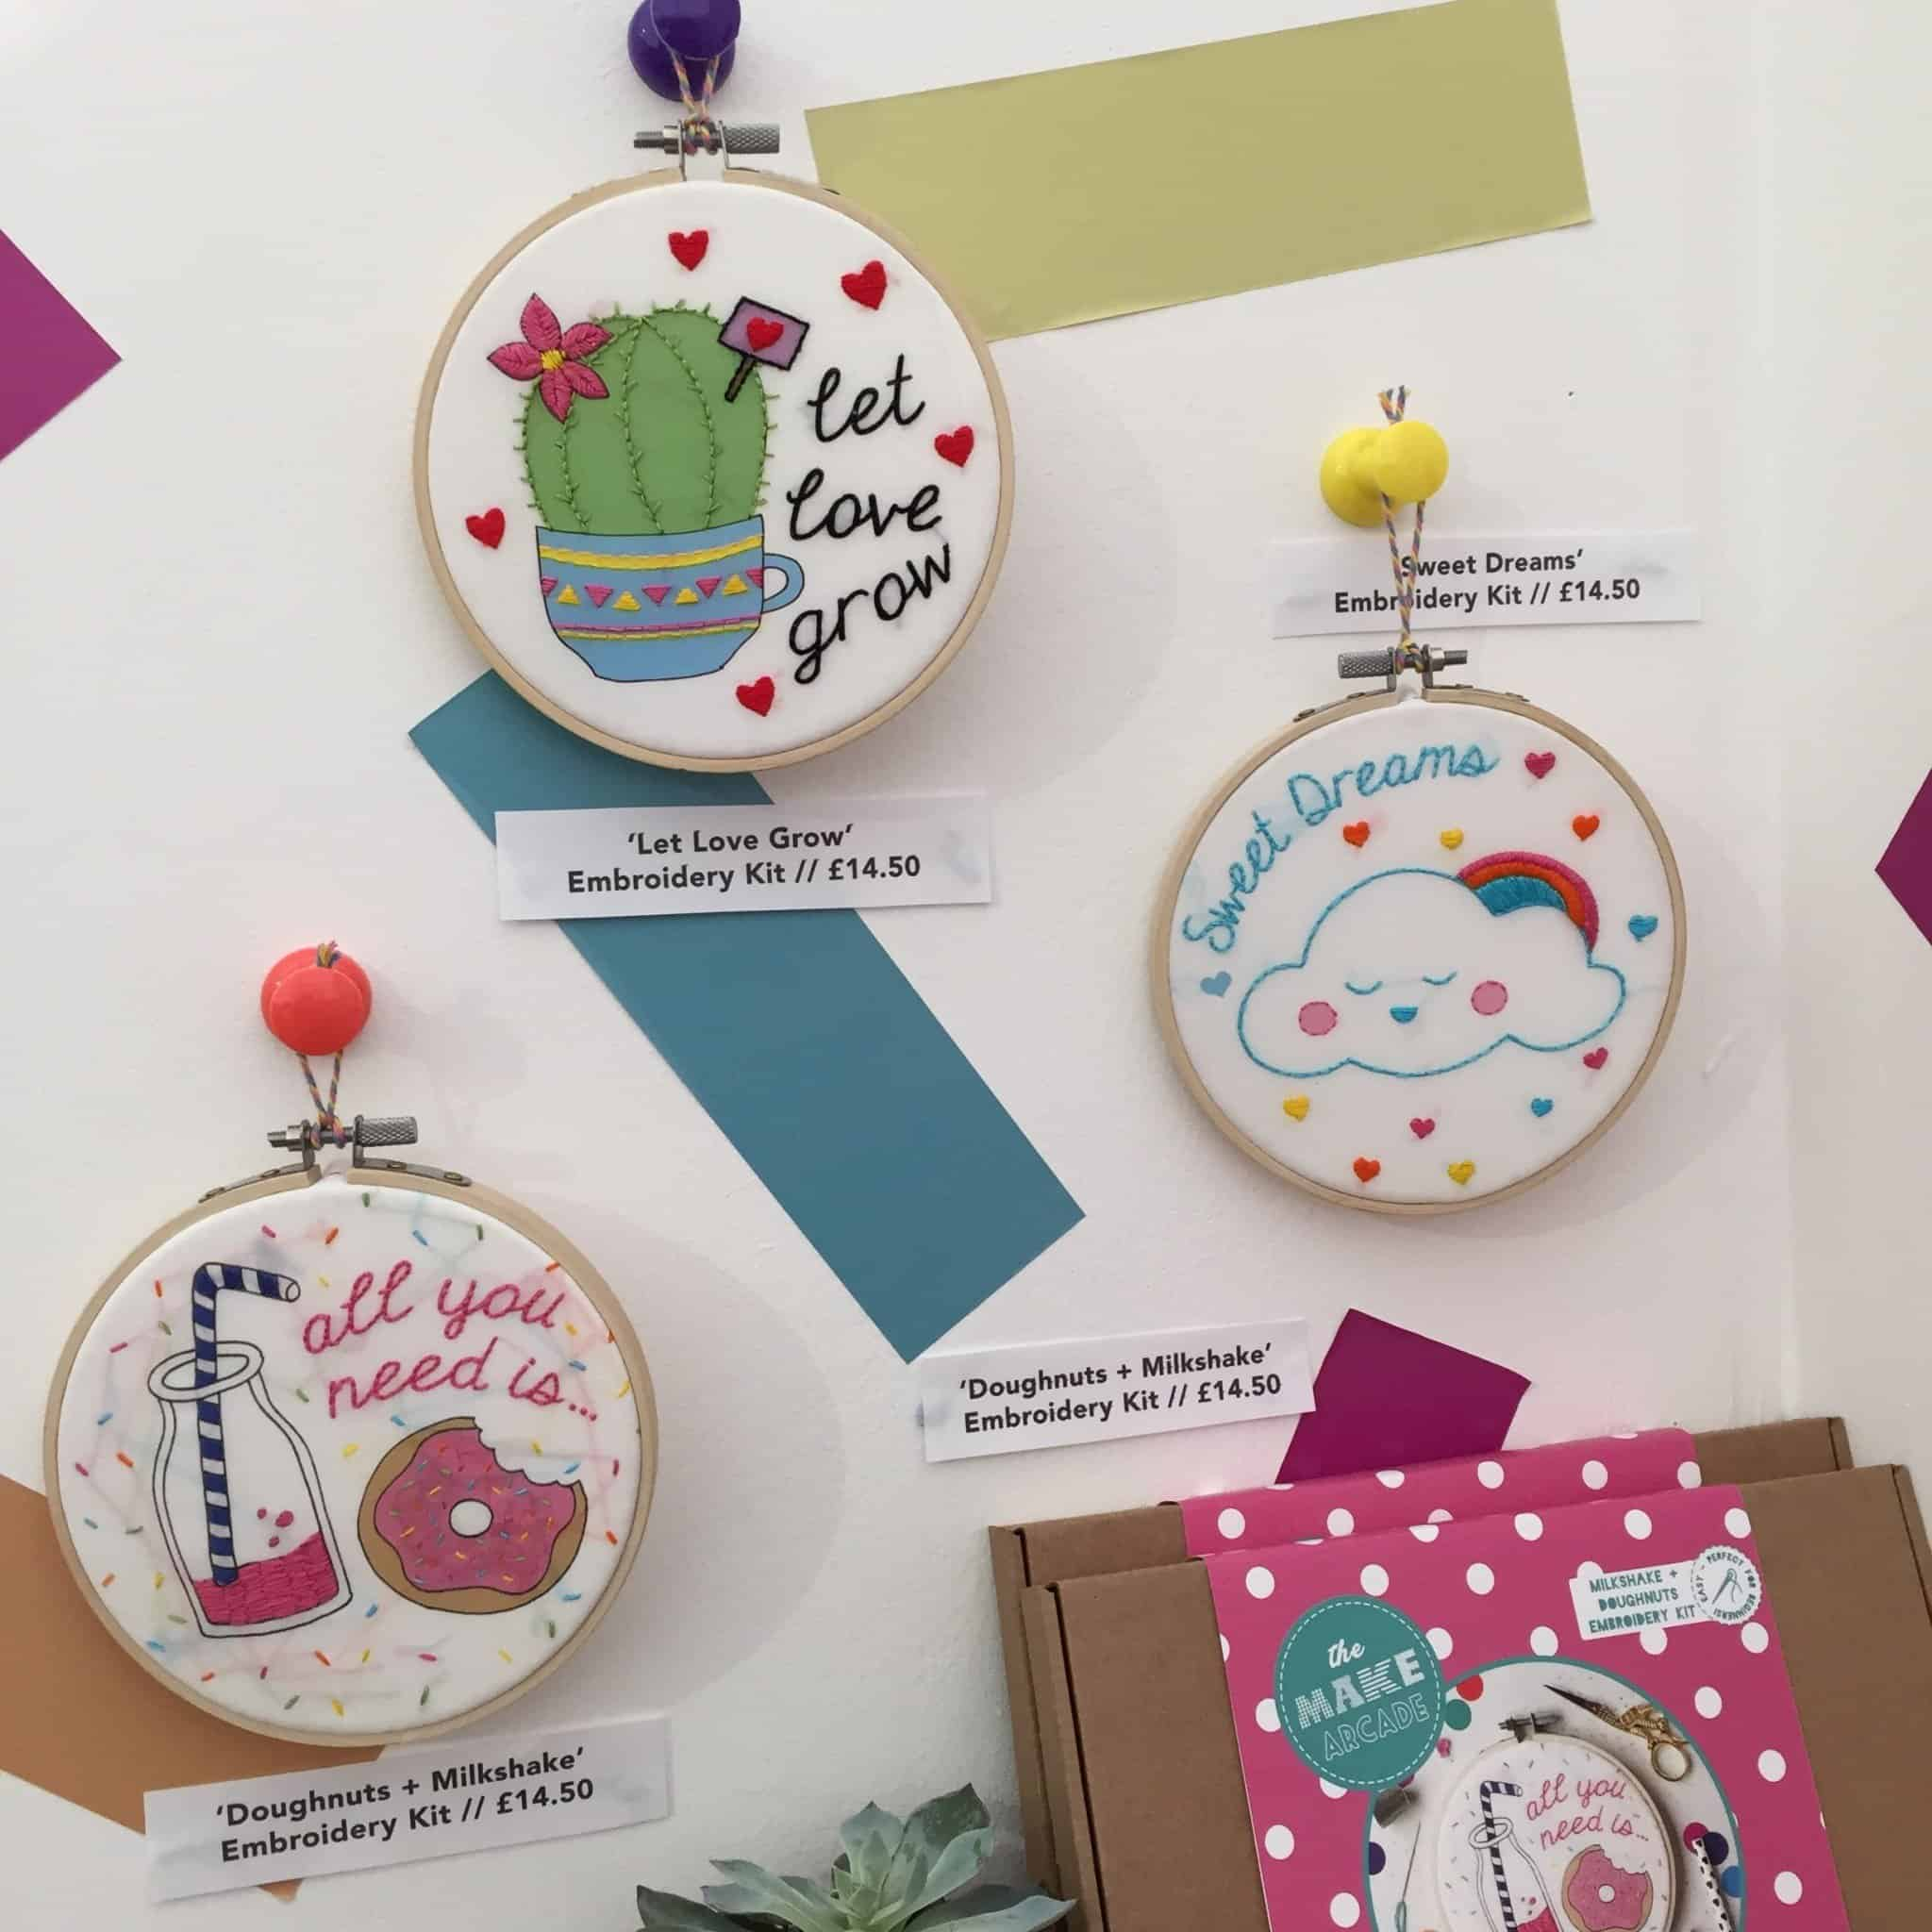 The Make Arcade Embroidery at The Handmade Fair